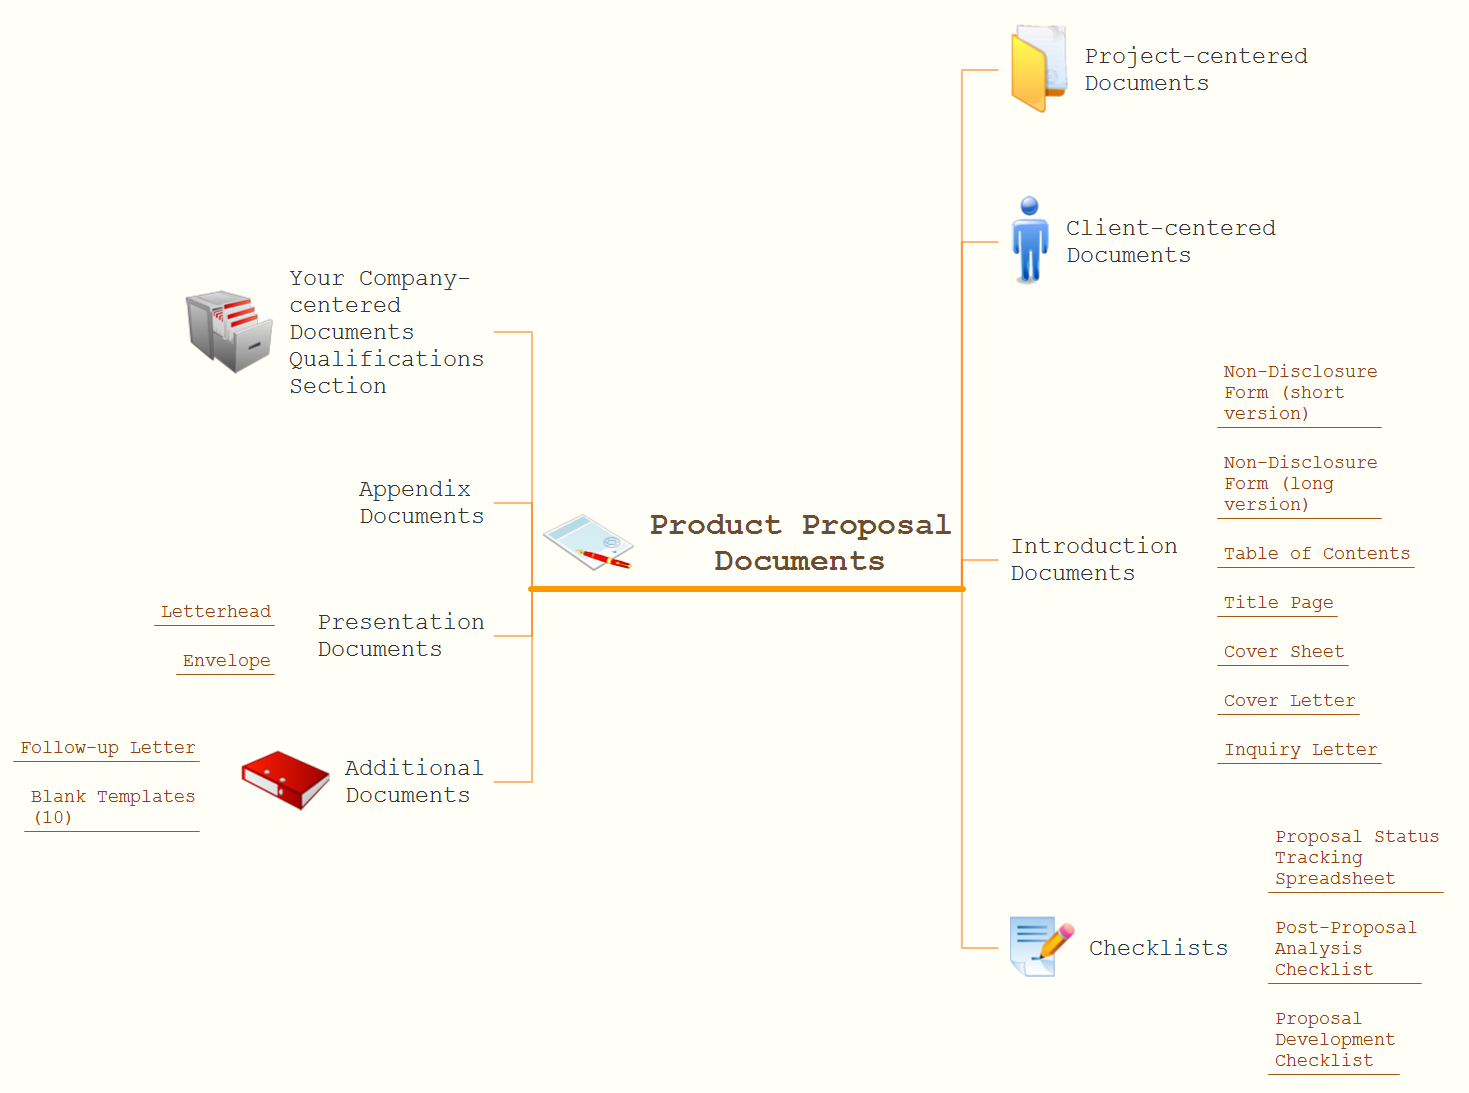 Product proposal documents expanded mindmap